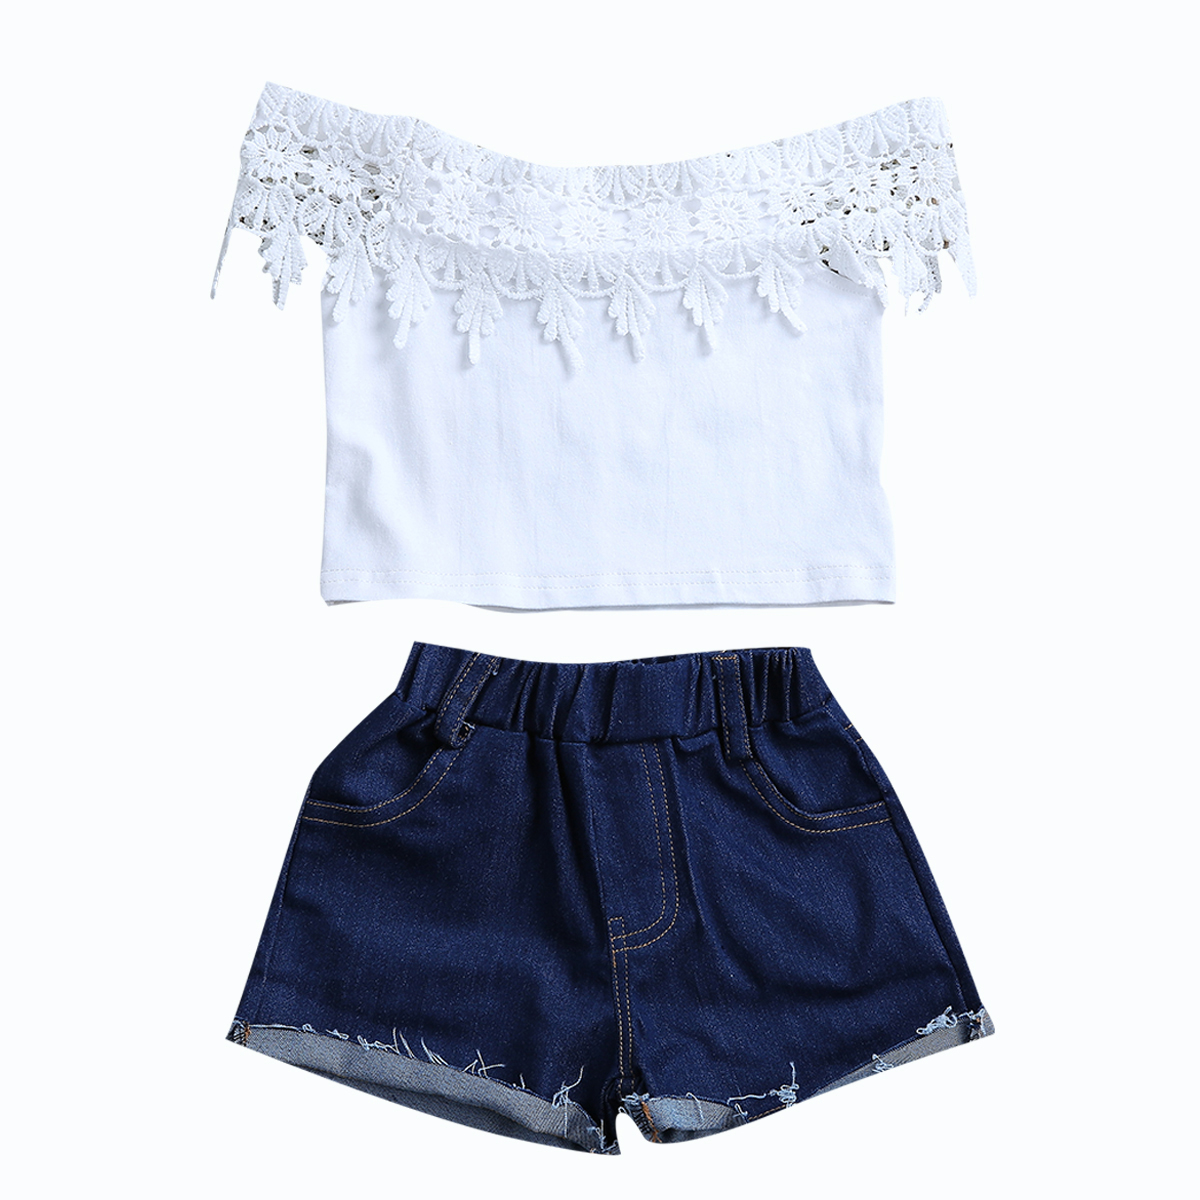 2017 New Fashion Children Girls Clothes Off Shoulder Lace Crop Tops White+Denim Shorts Hot Pant 2PCS Outfits Kids Clothing Set 2017 cute kids girl clothing set off shoulder lace white t shirt tops denim pant jeans 2pcs children clothes 2 7y